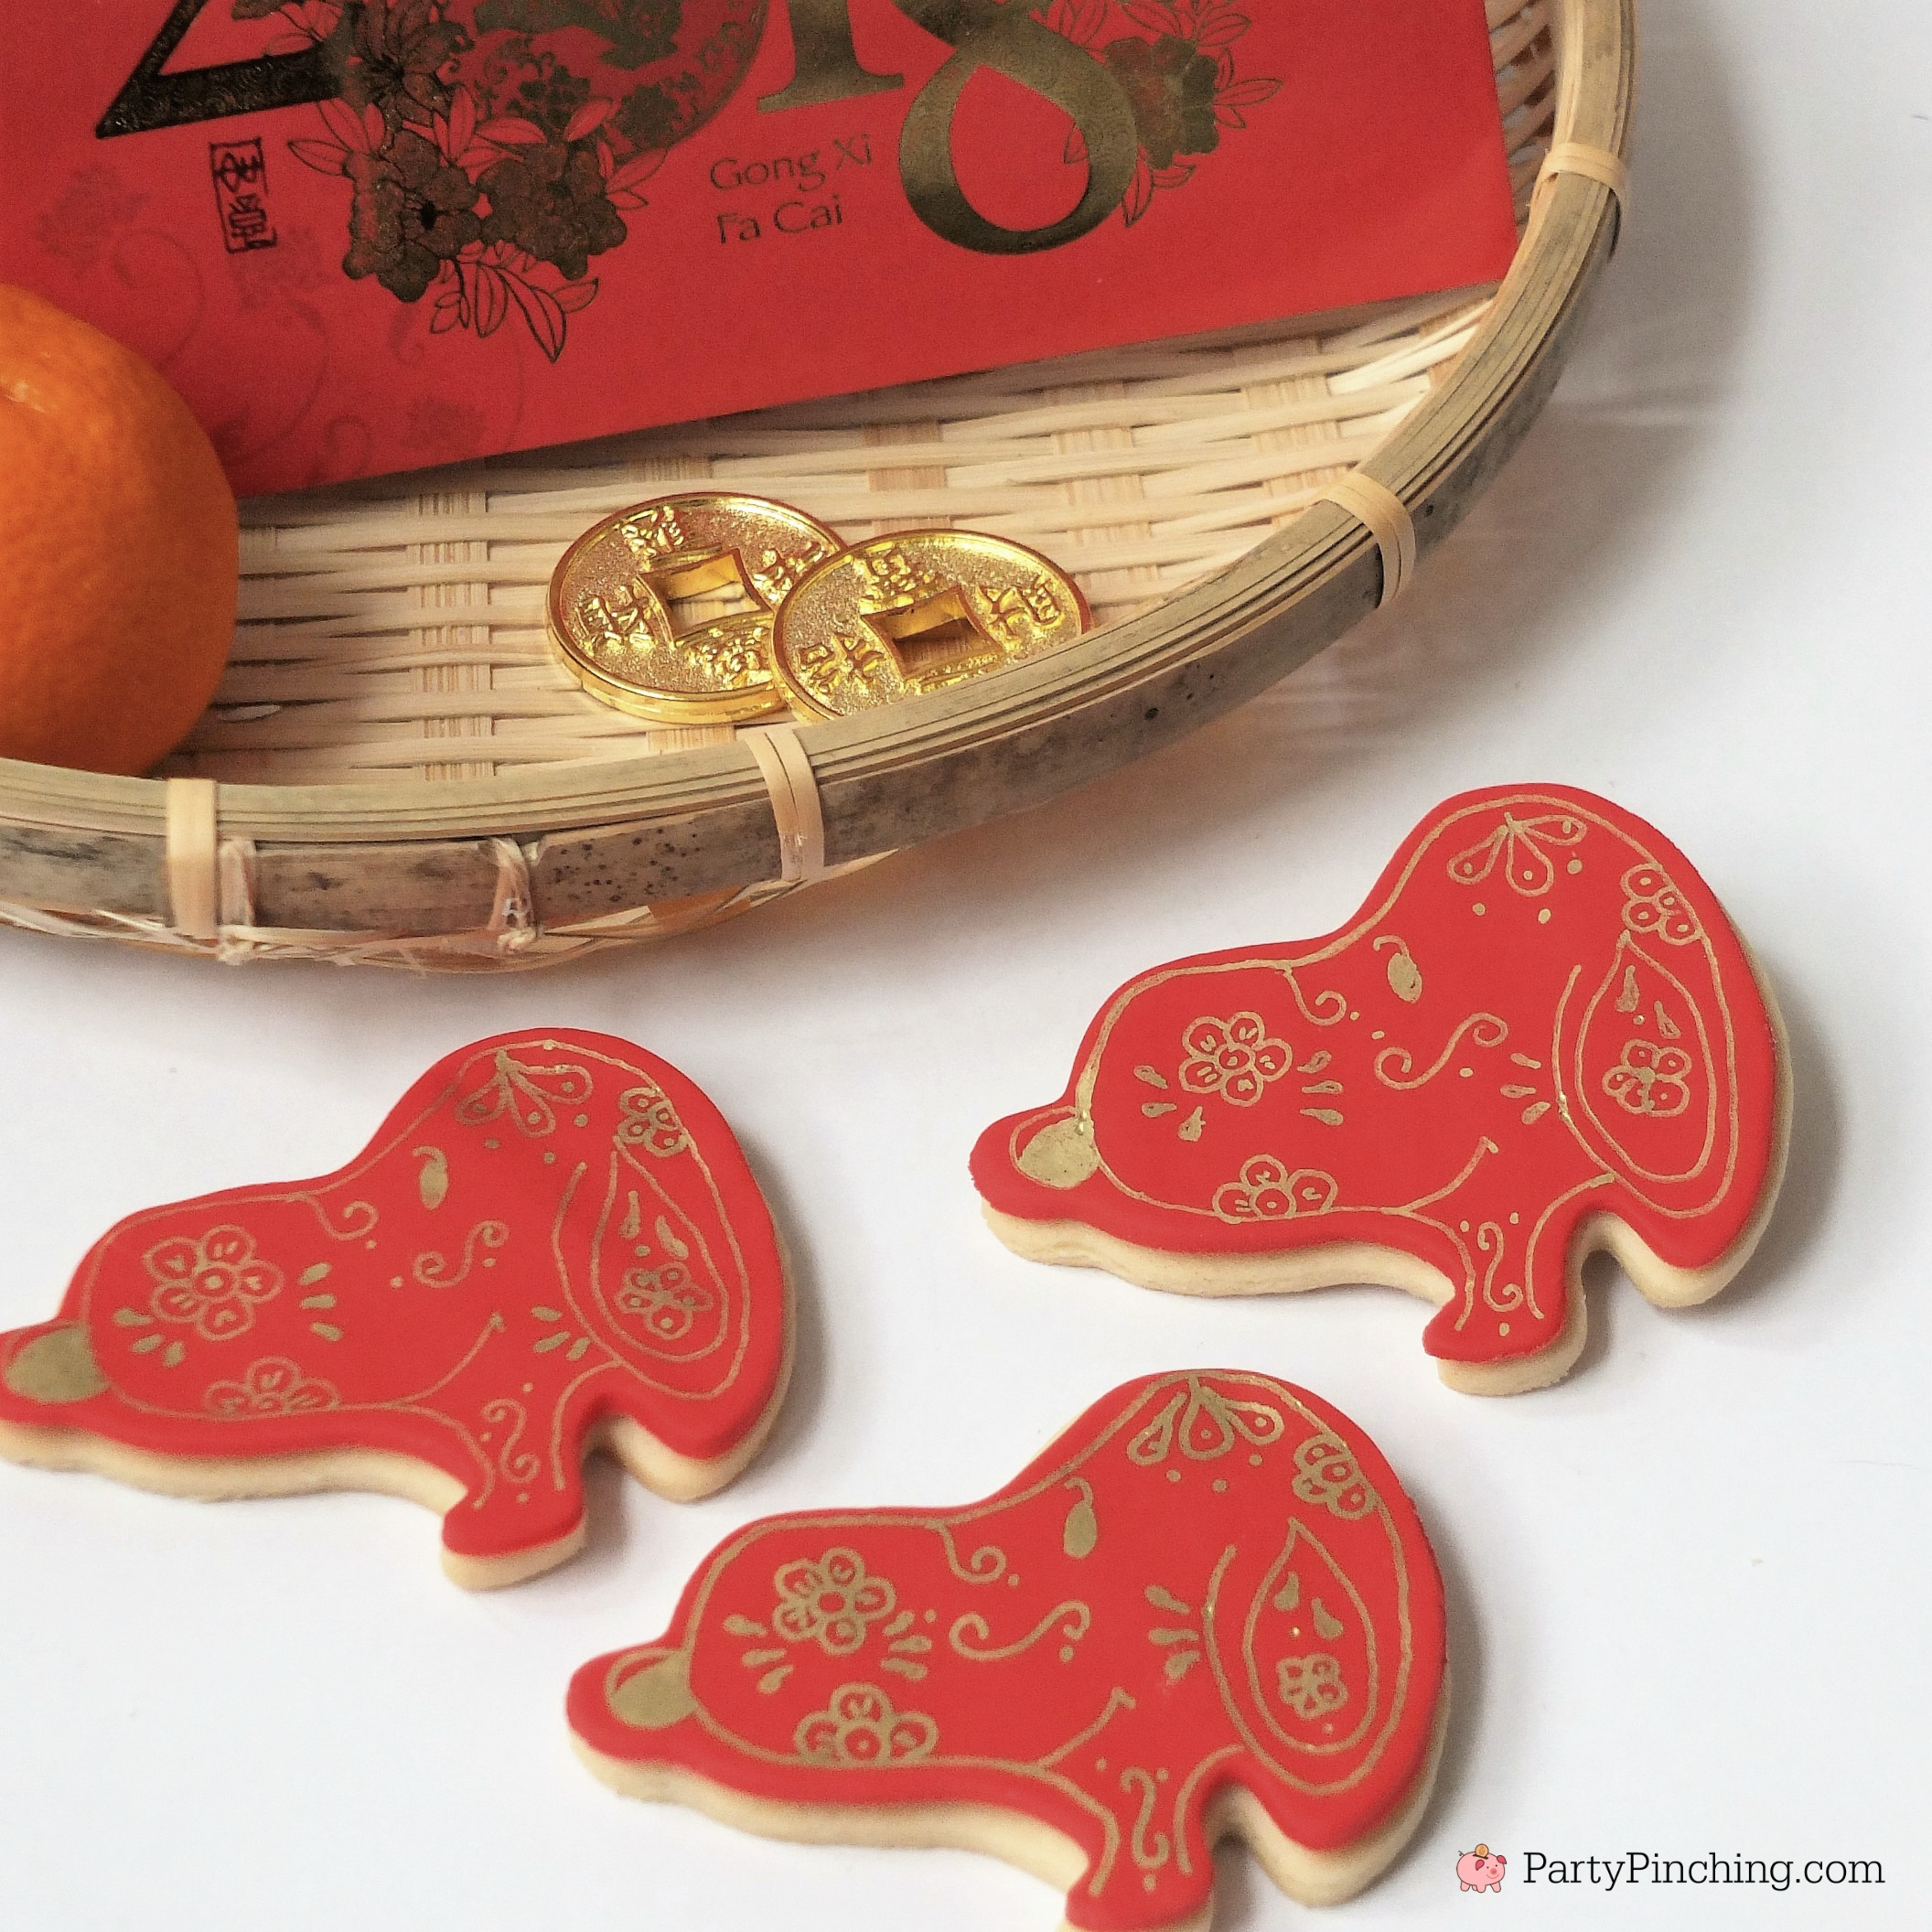 Lunar New Year, Chinese New Year, Year of the Dog, Snoopy cookies, Peanuts Cookies, Red and gold cookies, dessert ideas for Chinese New Year, Dog cookies, pretty celebration cookies, painted cookies